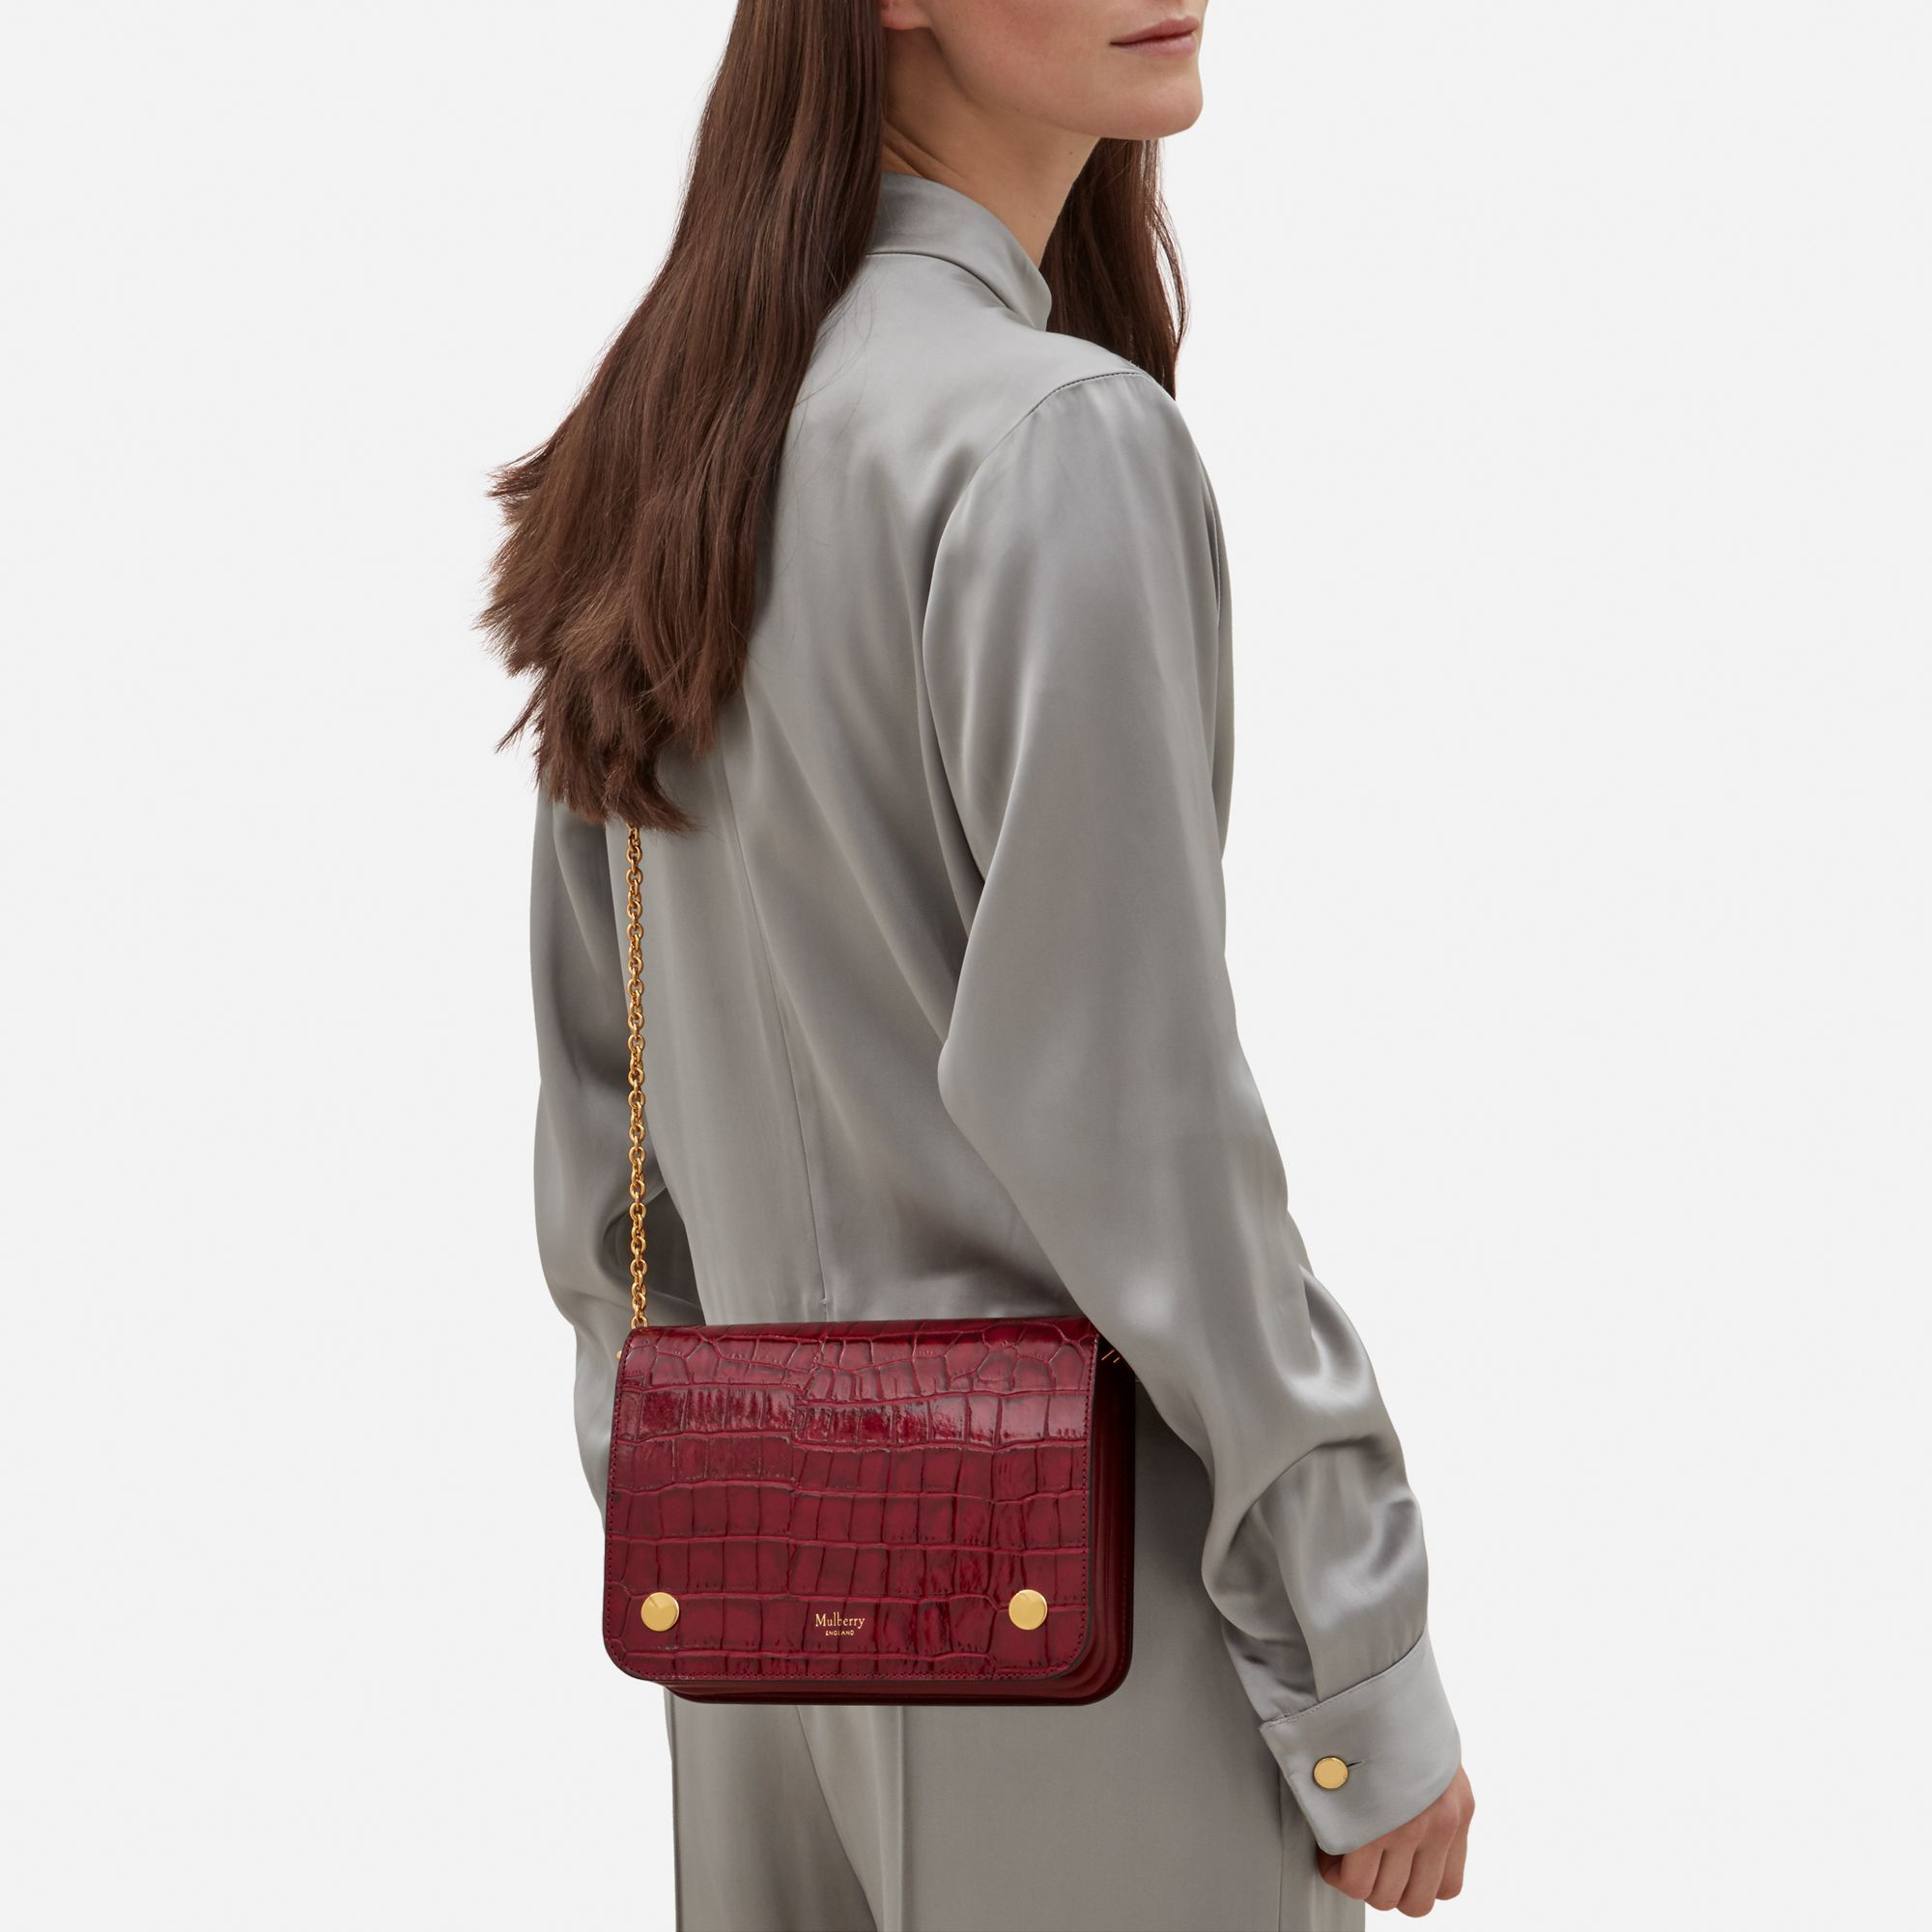 e48ebe4106e6 Shop the Clifton in Raspberry Croc Print Leather at Mulberry.com. A compact